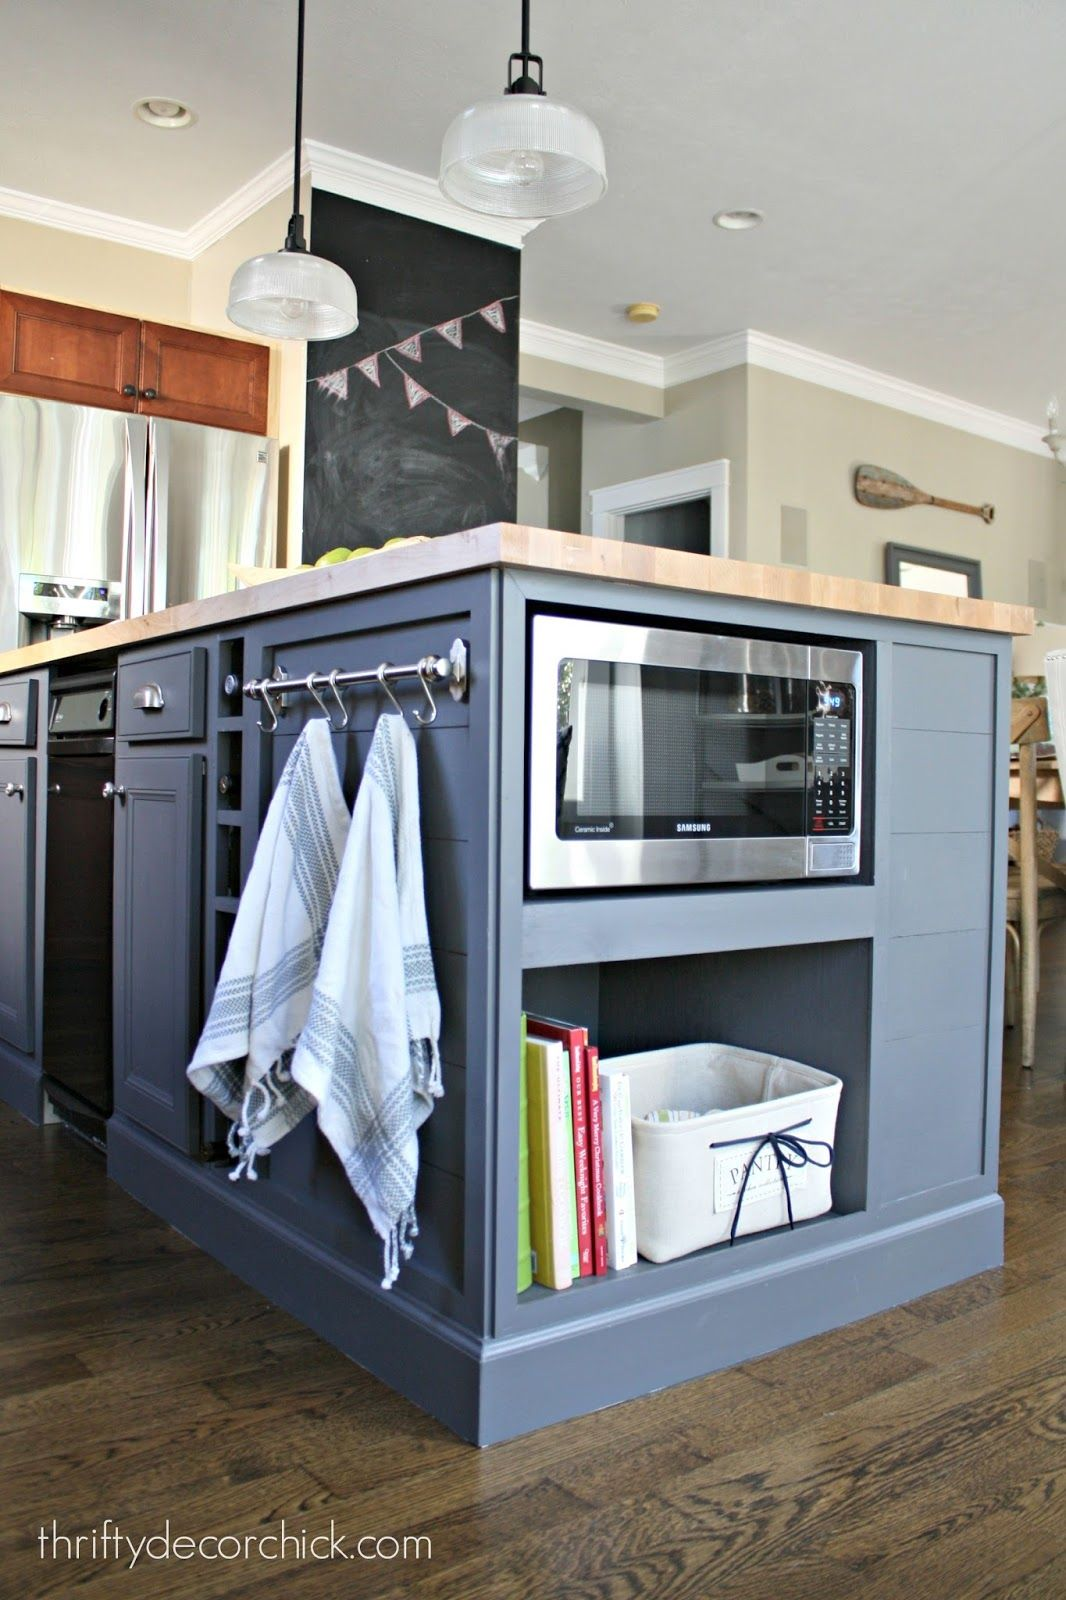 Microwave In The Island! Finally! Best Of Pinterest Pinterest